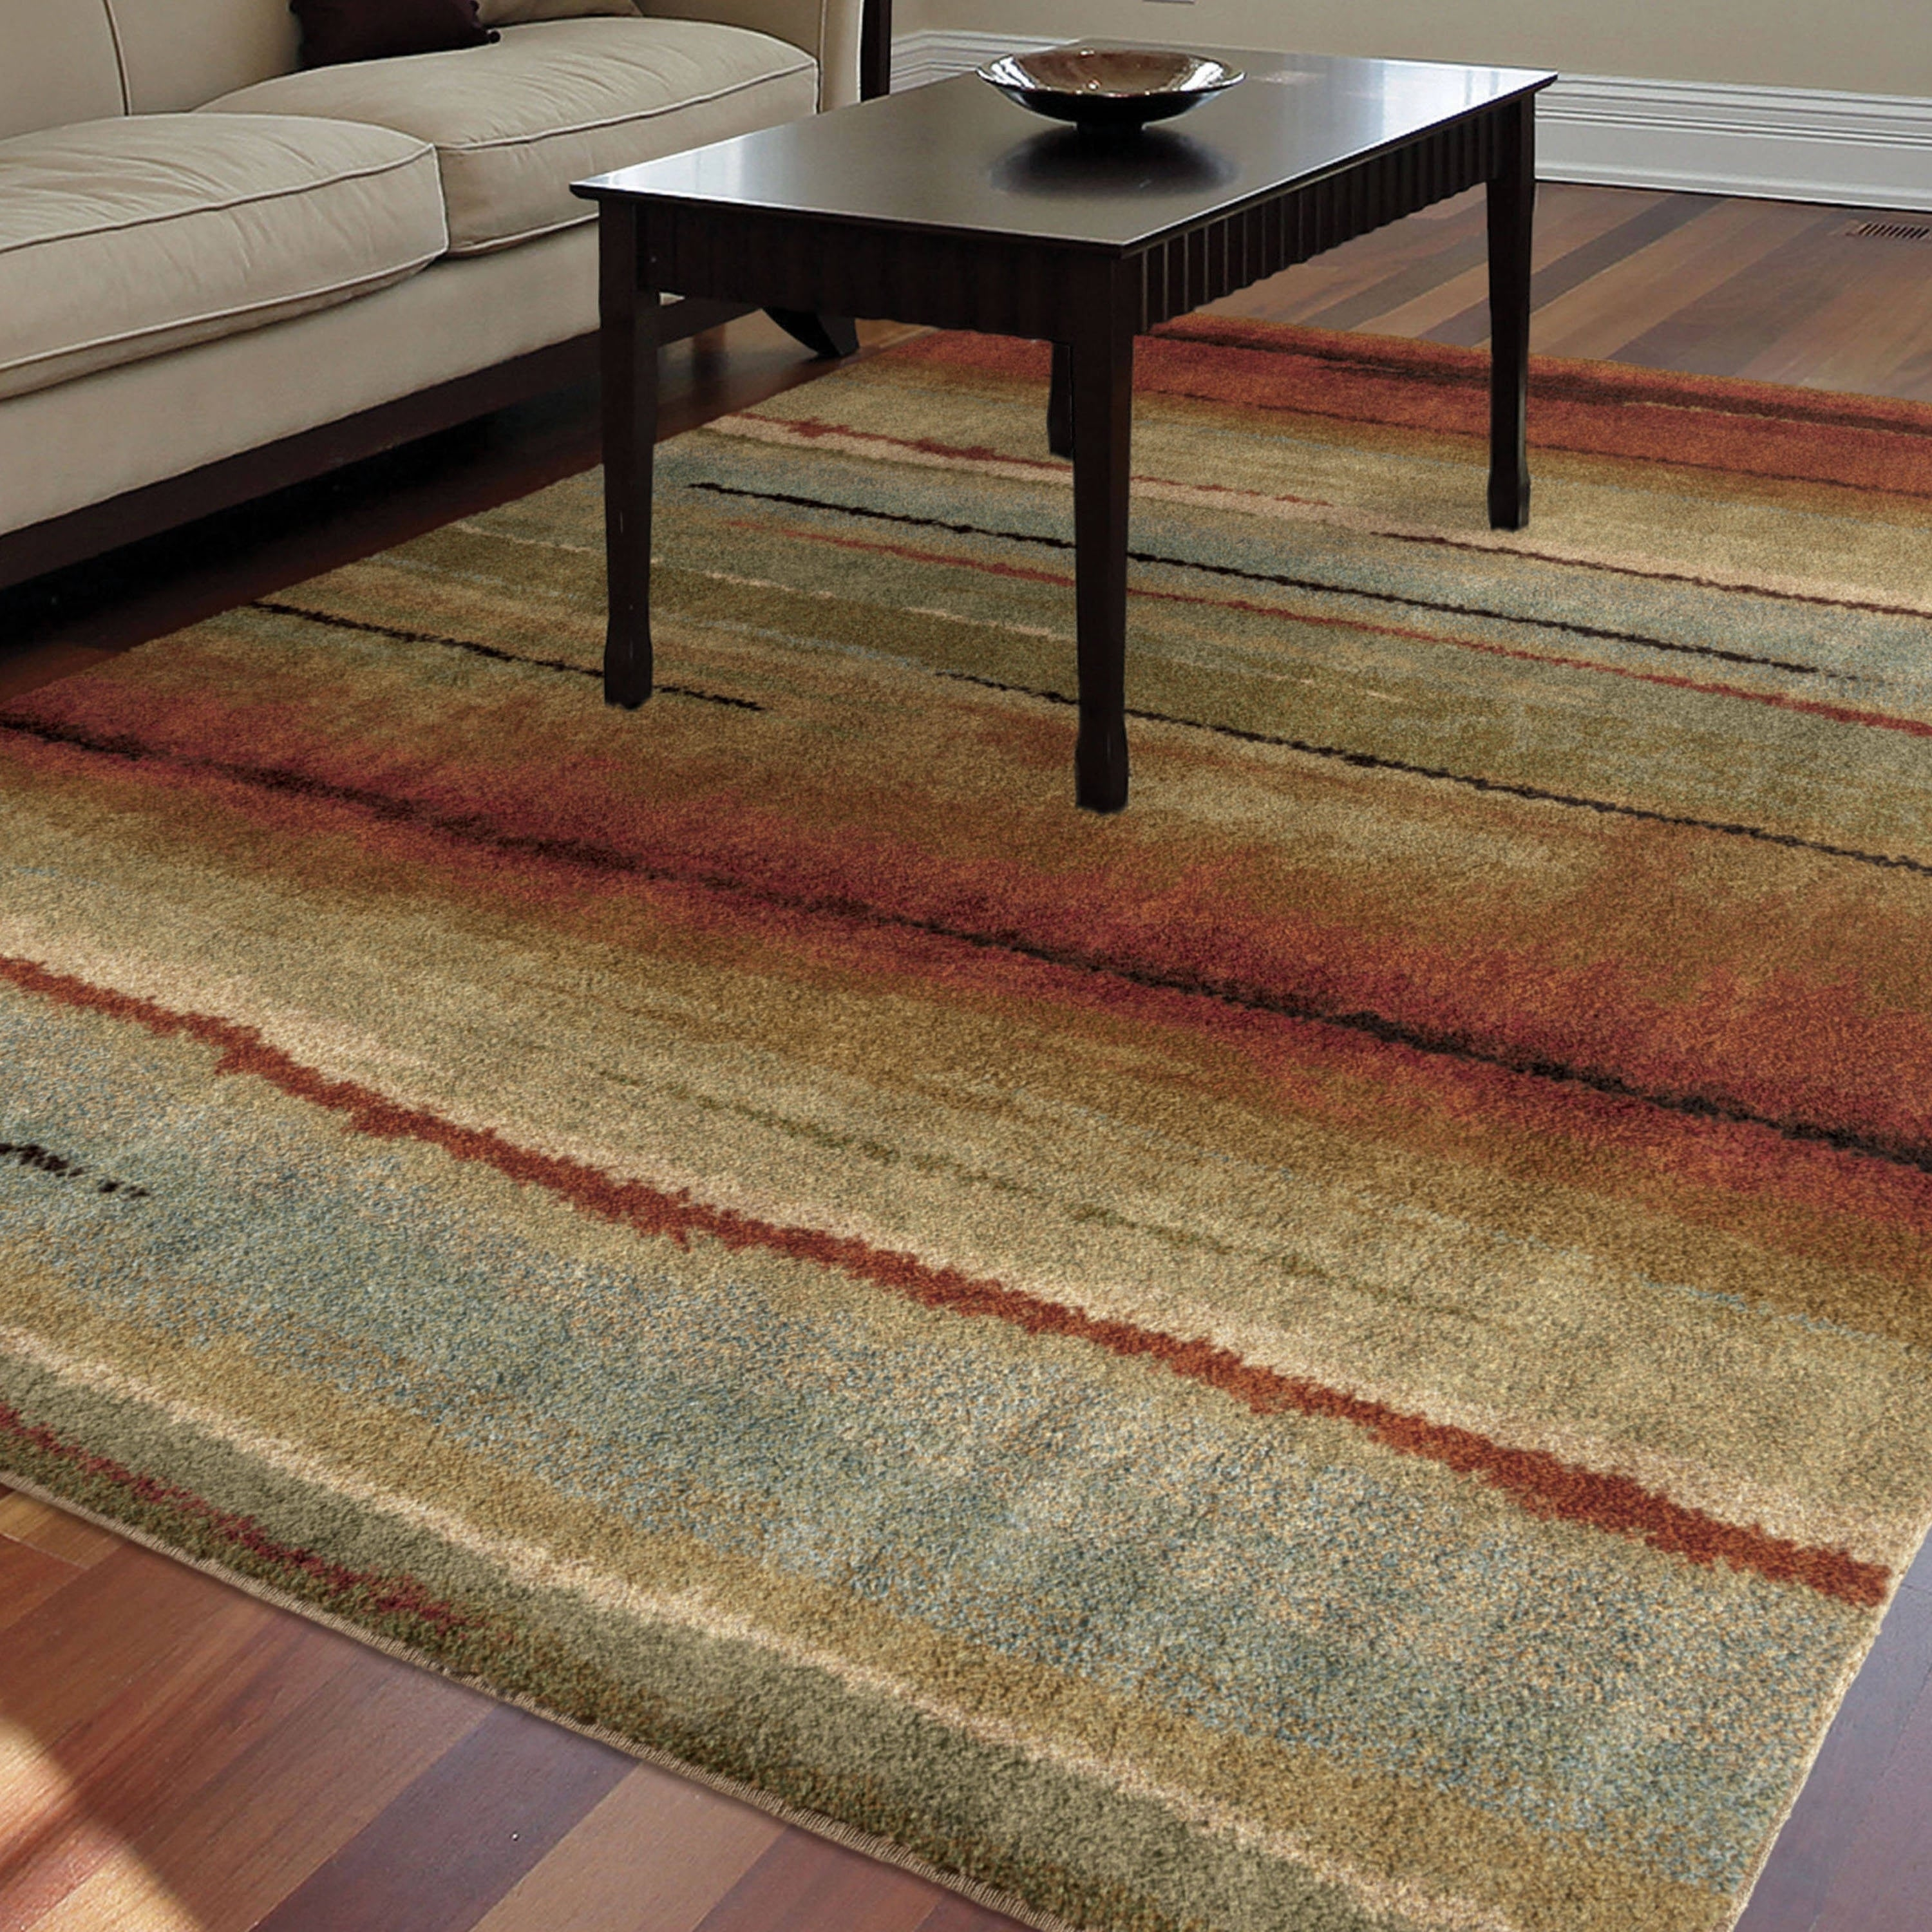 Carolina Weavers Grand Comfort Shag Area Rug (7'10 x 10'10) - Free Shipping  Today - Overstock.com - 17115167